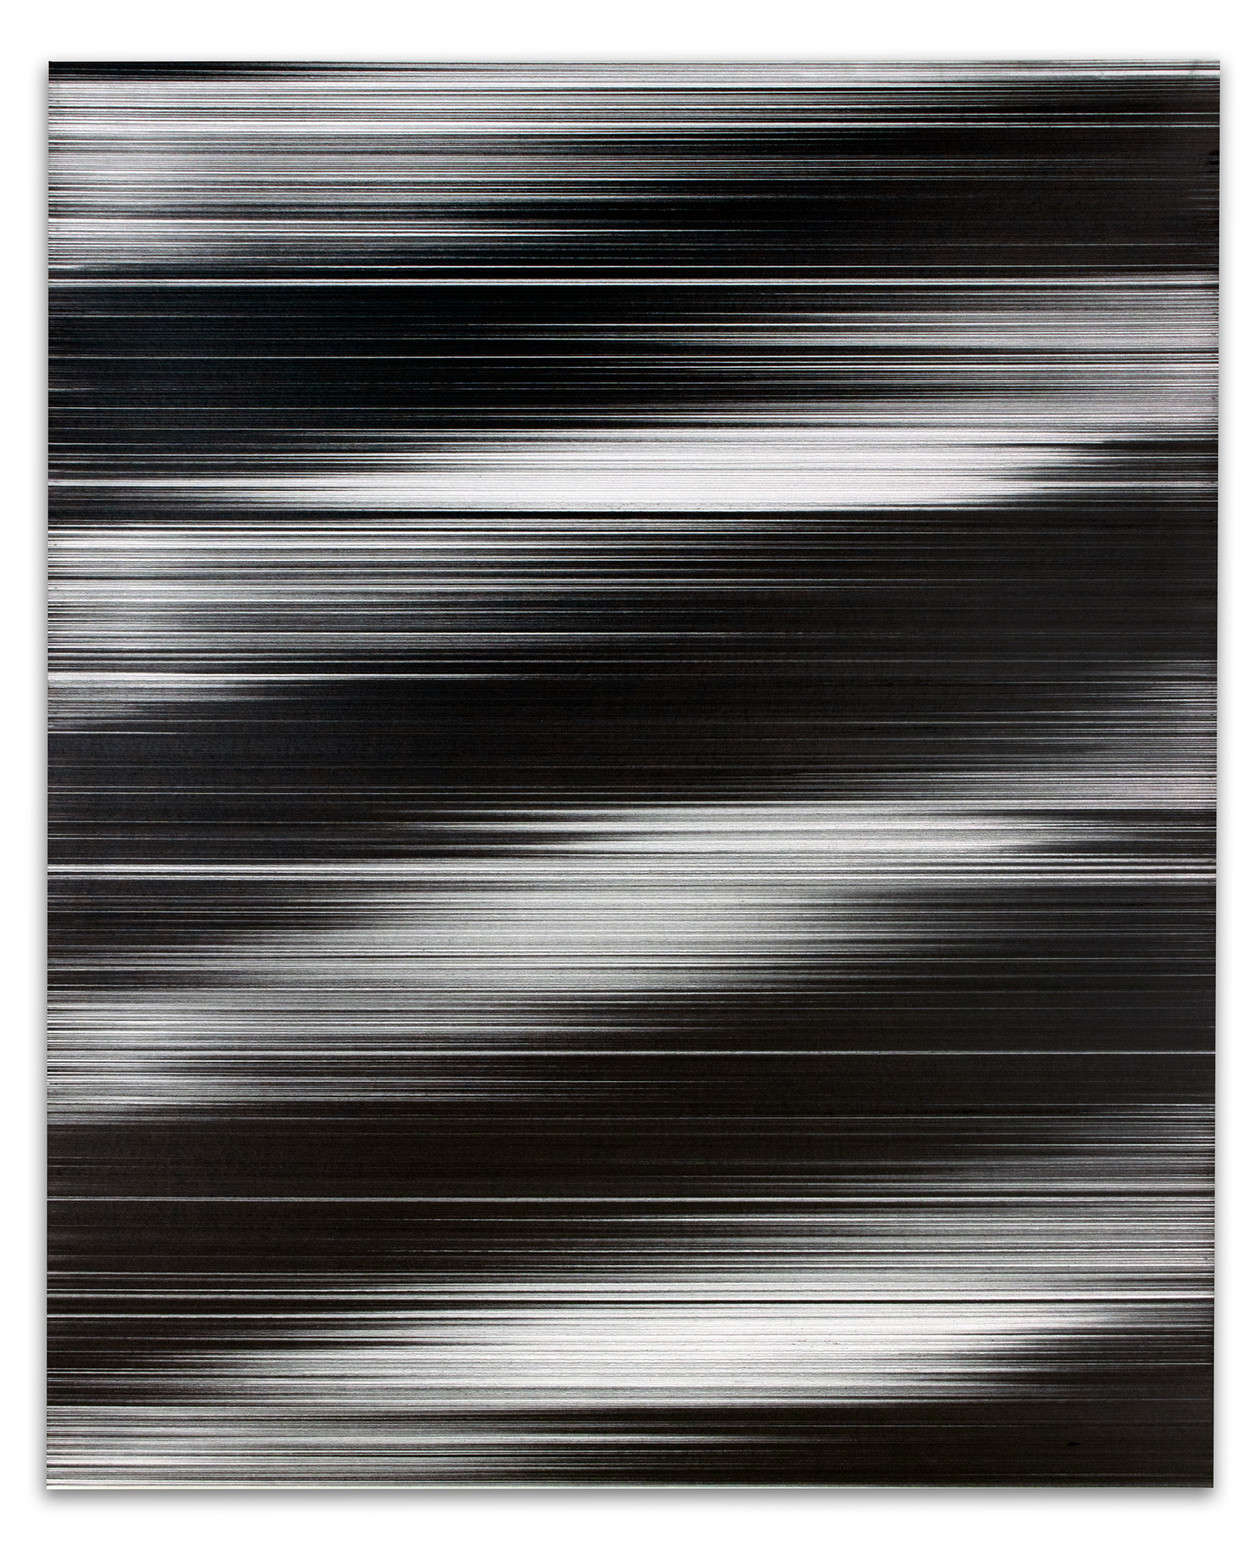 Waves in black & white No. 2 (2017) by John Whitten